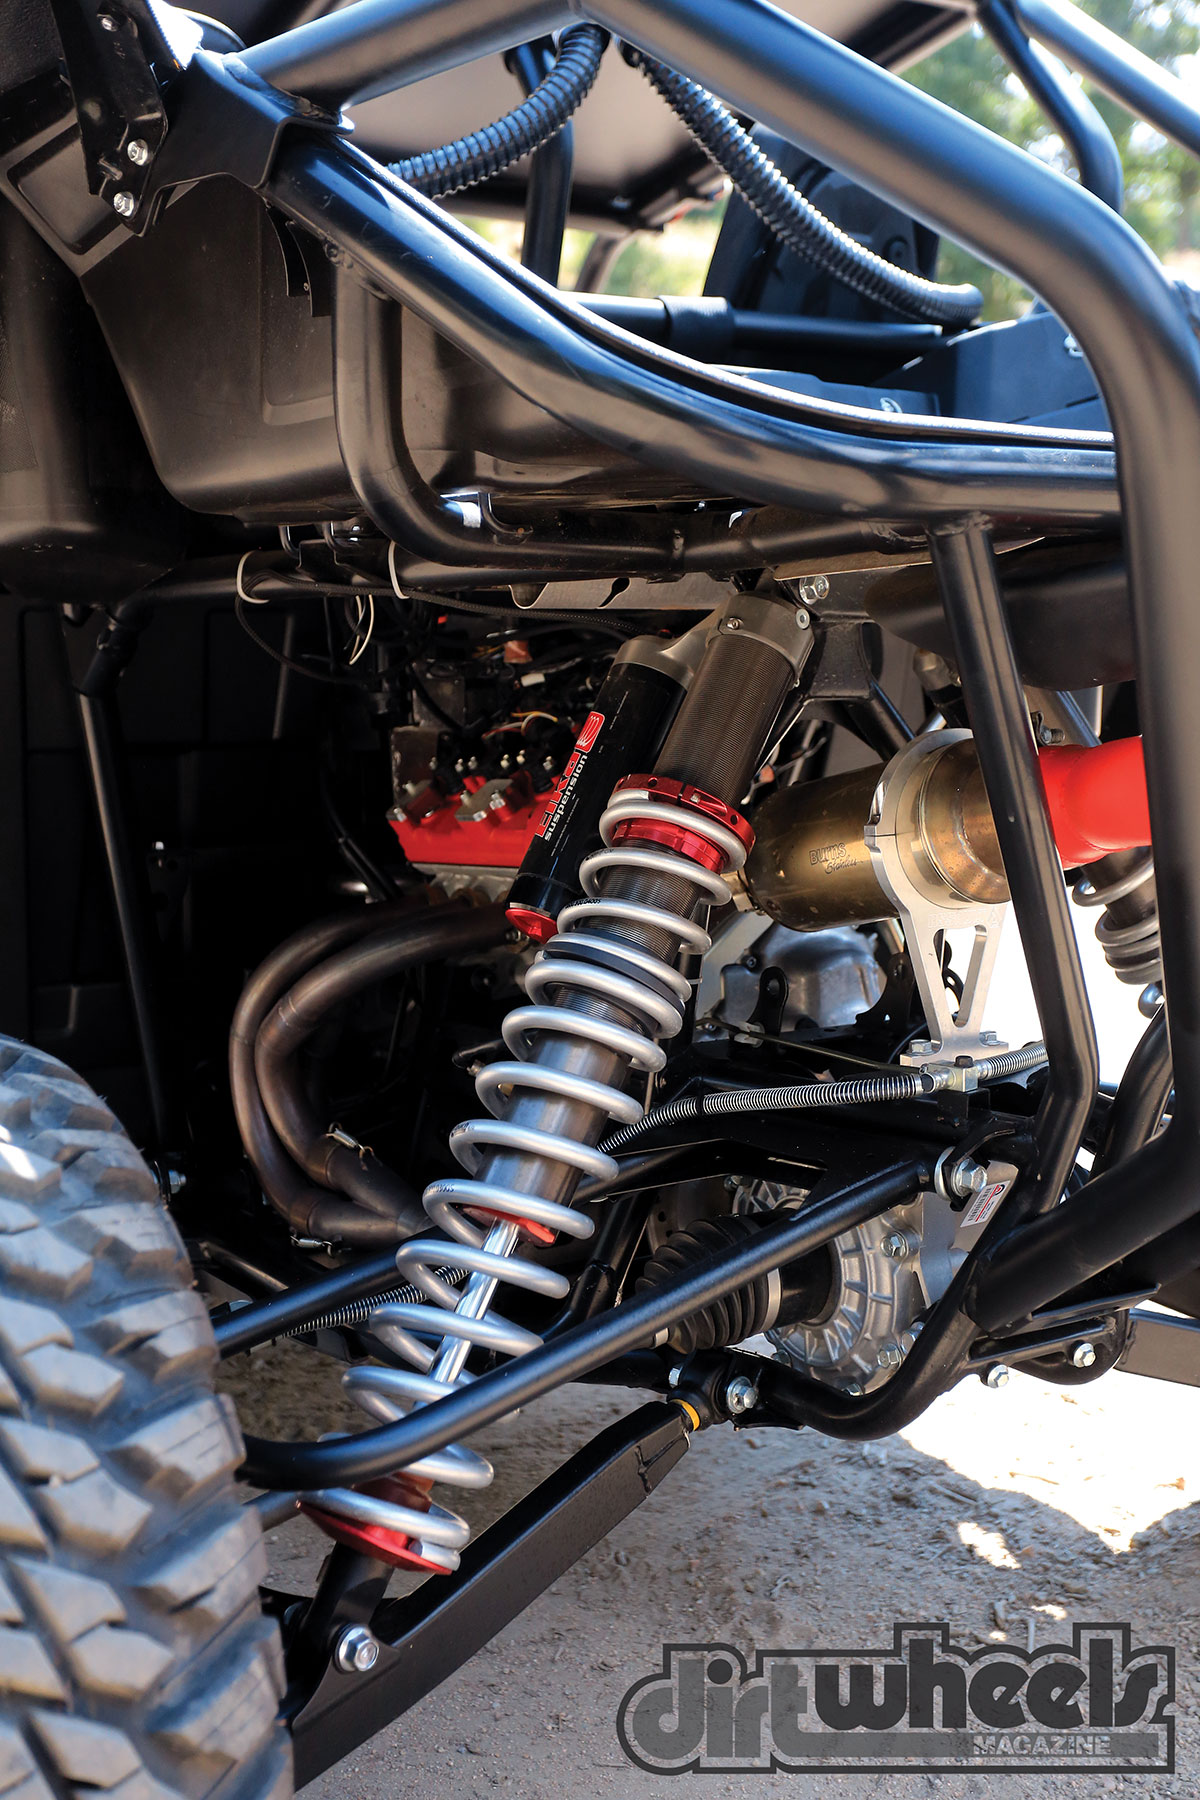 Elka Stage 5 shocks replaced the stock ones to provide a better ride in all types of terrain. They soak up slow-speed chop far better than the stockers.